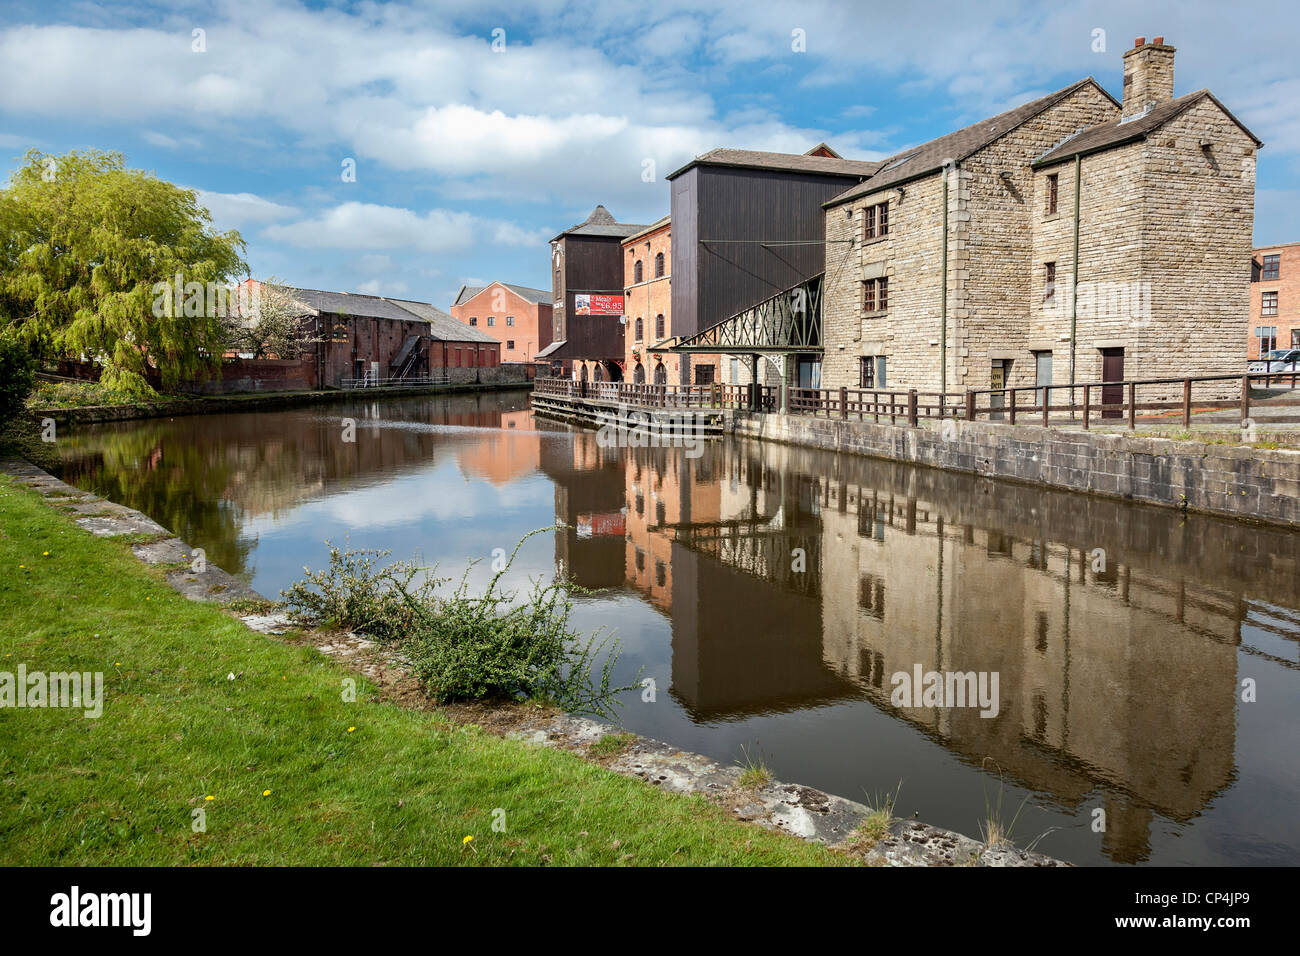 Wigan Pier made famous the book by George Orwell 'The Road to Wigan Pier' - Stock Image